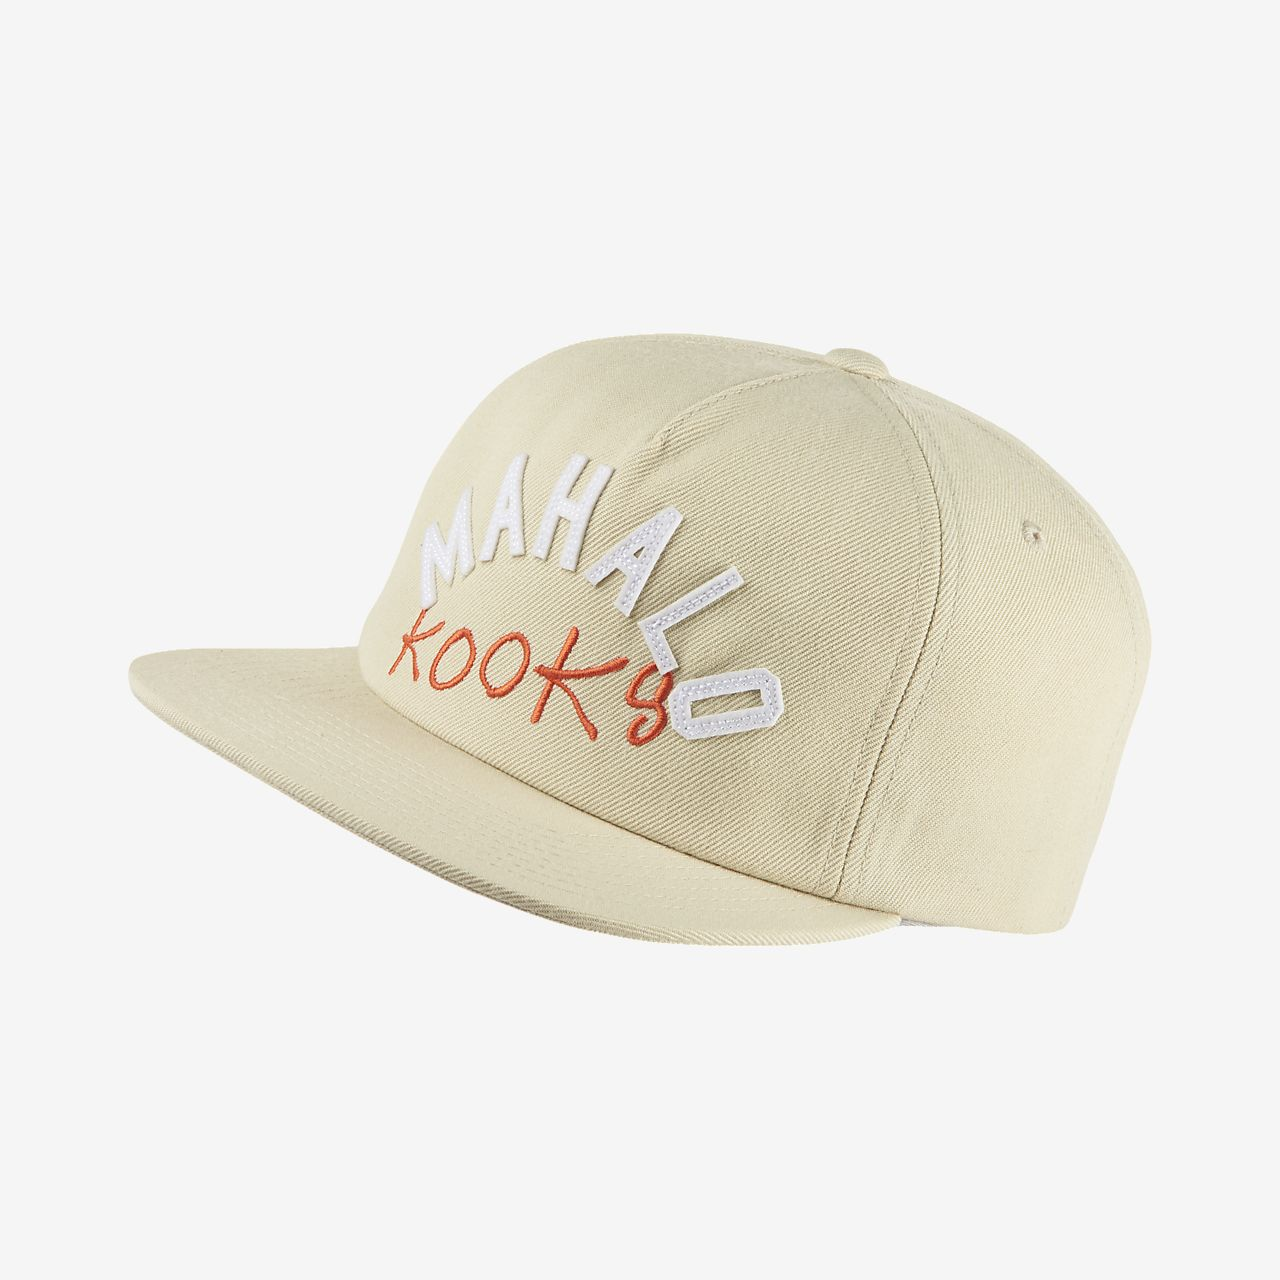 Hurley Mahalo Kooks Adjustable Hat